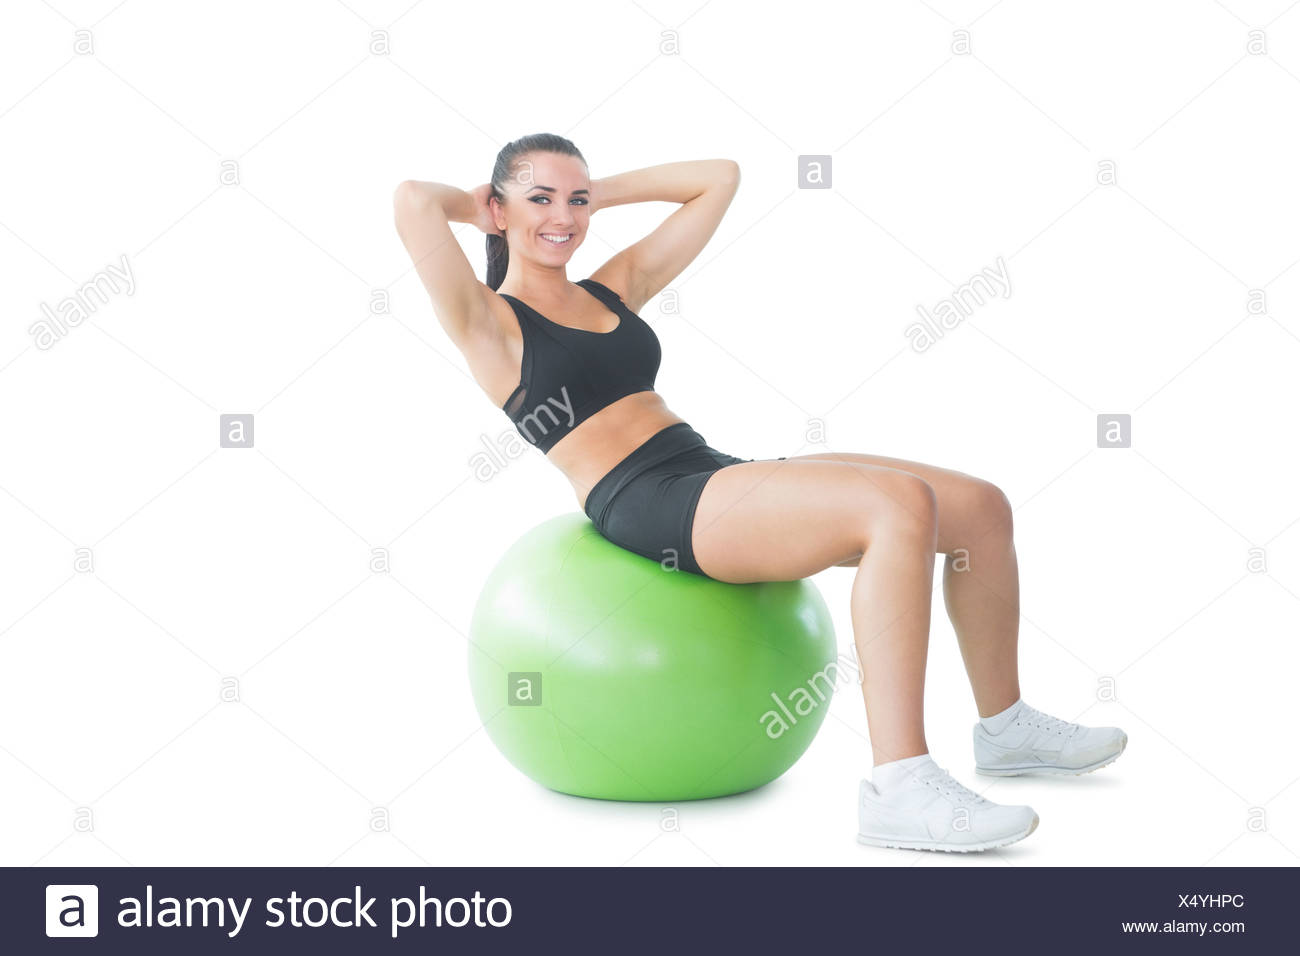 Gorgeous active woman practicing an exercise on an exercise ball - Stock Image